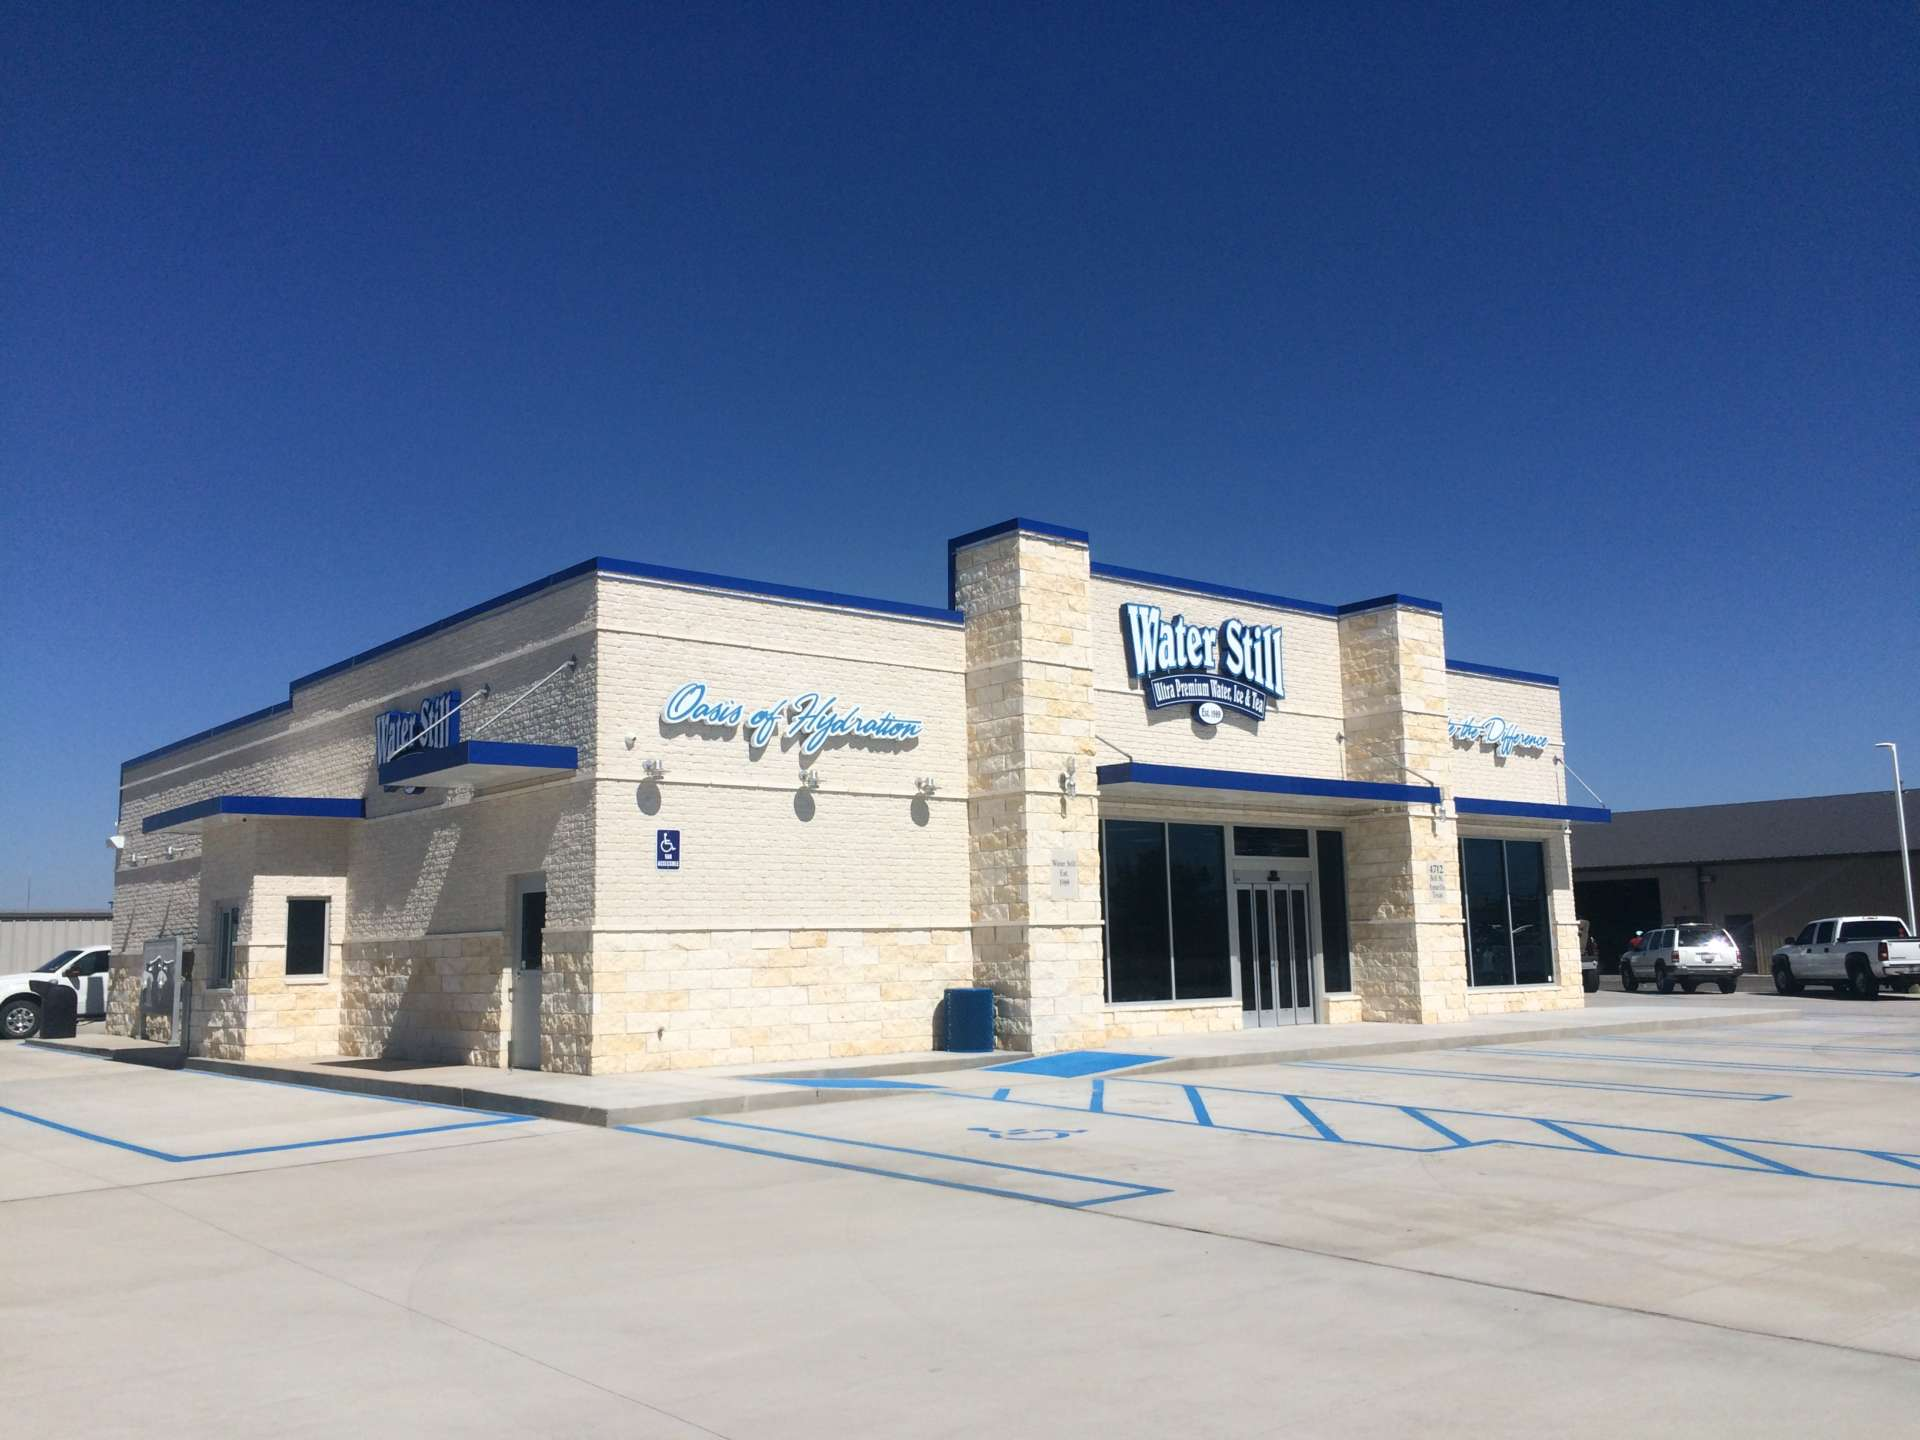 New Water Still Exterior with parking lot in Amarillo, Texas